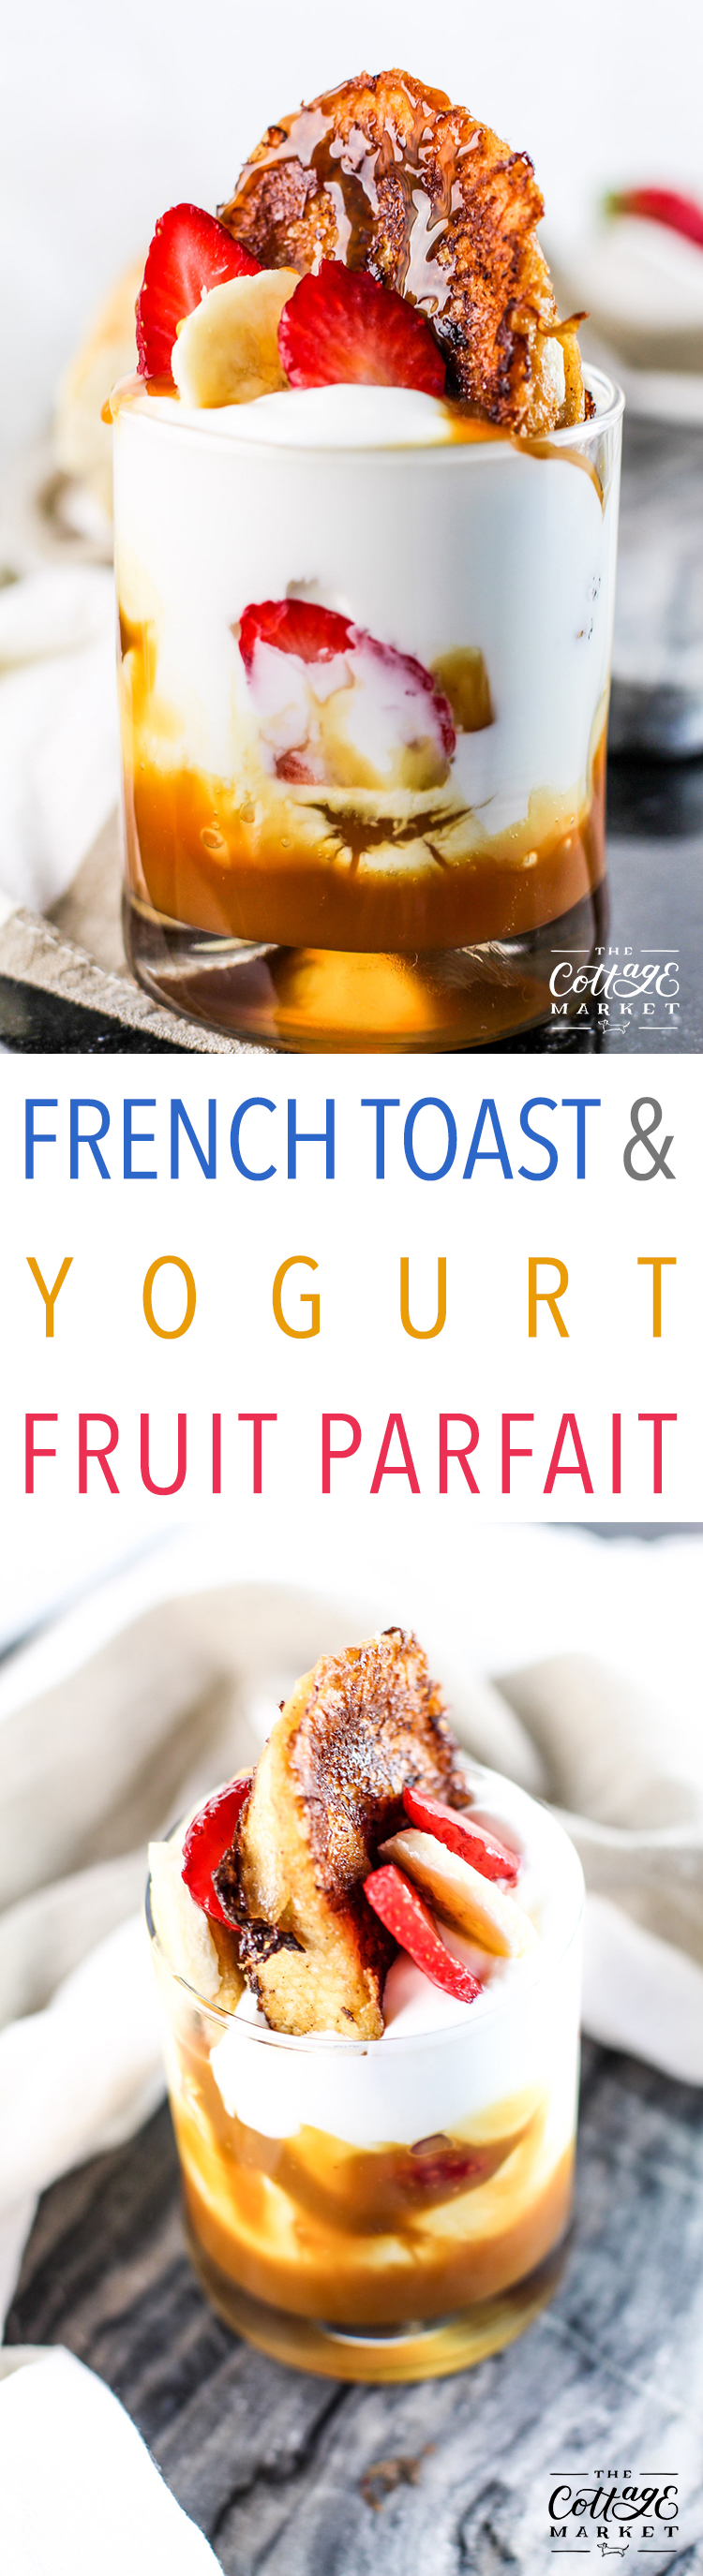 http://thecottagemarket.com/wp-content/uploads/2017/05/French-Toast-Yogurt-Fruit-Parfait-tower-1.jpg